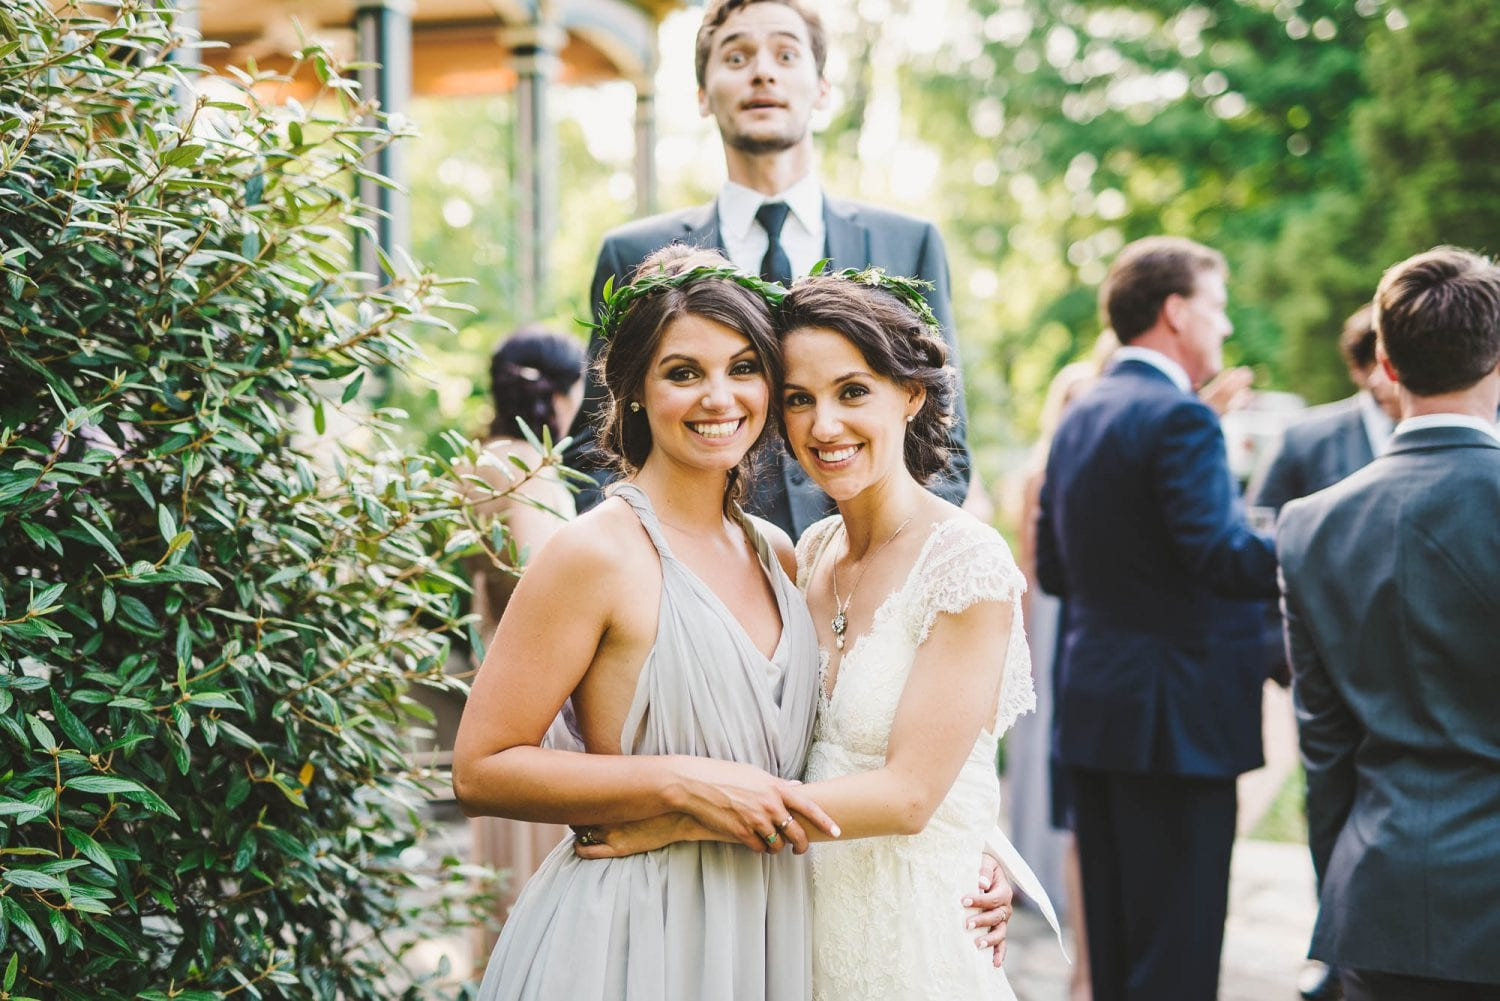 Wedding photo bomber